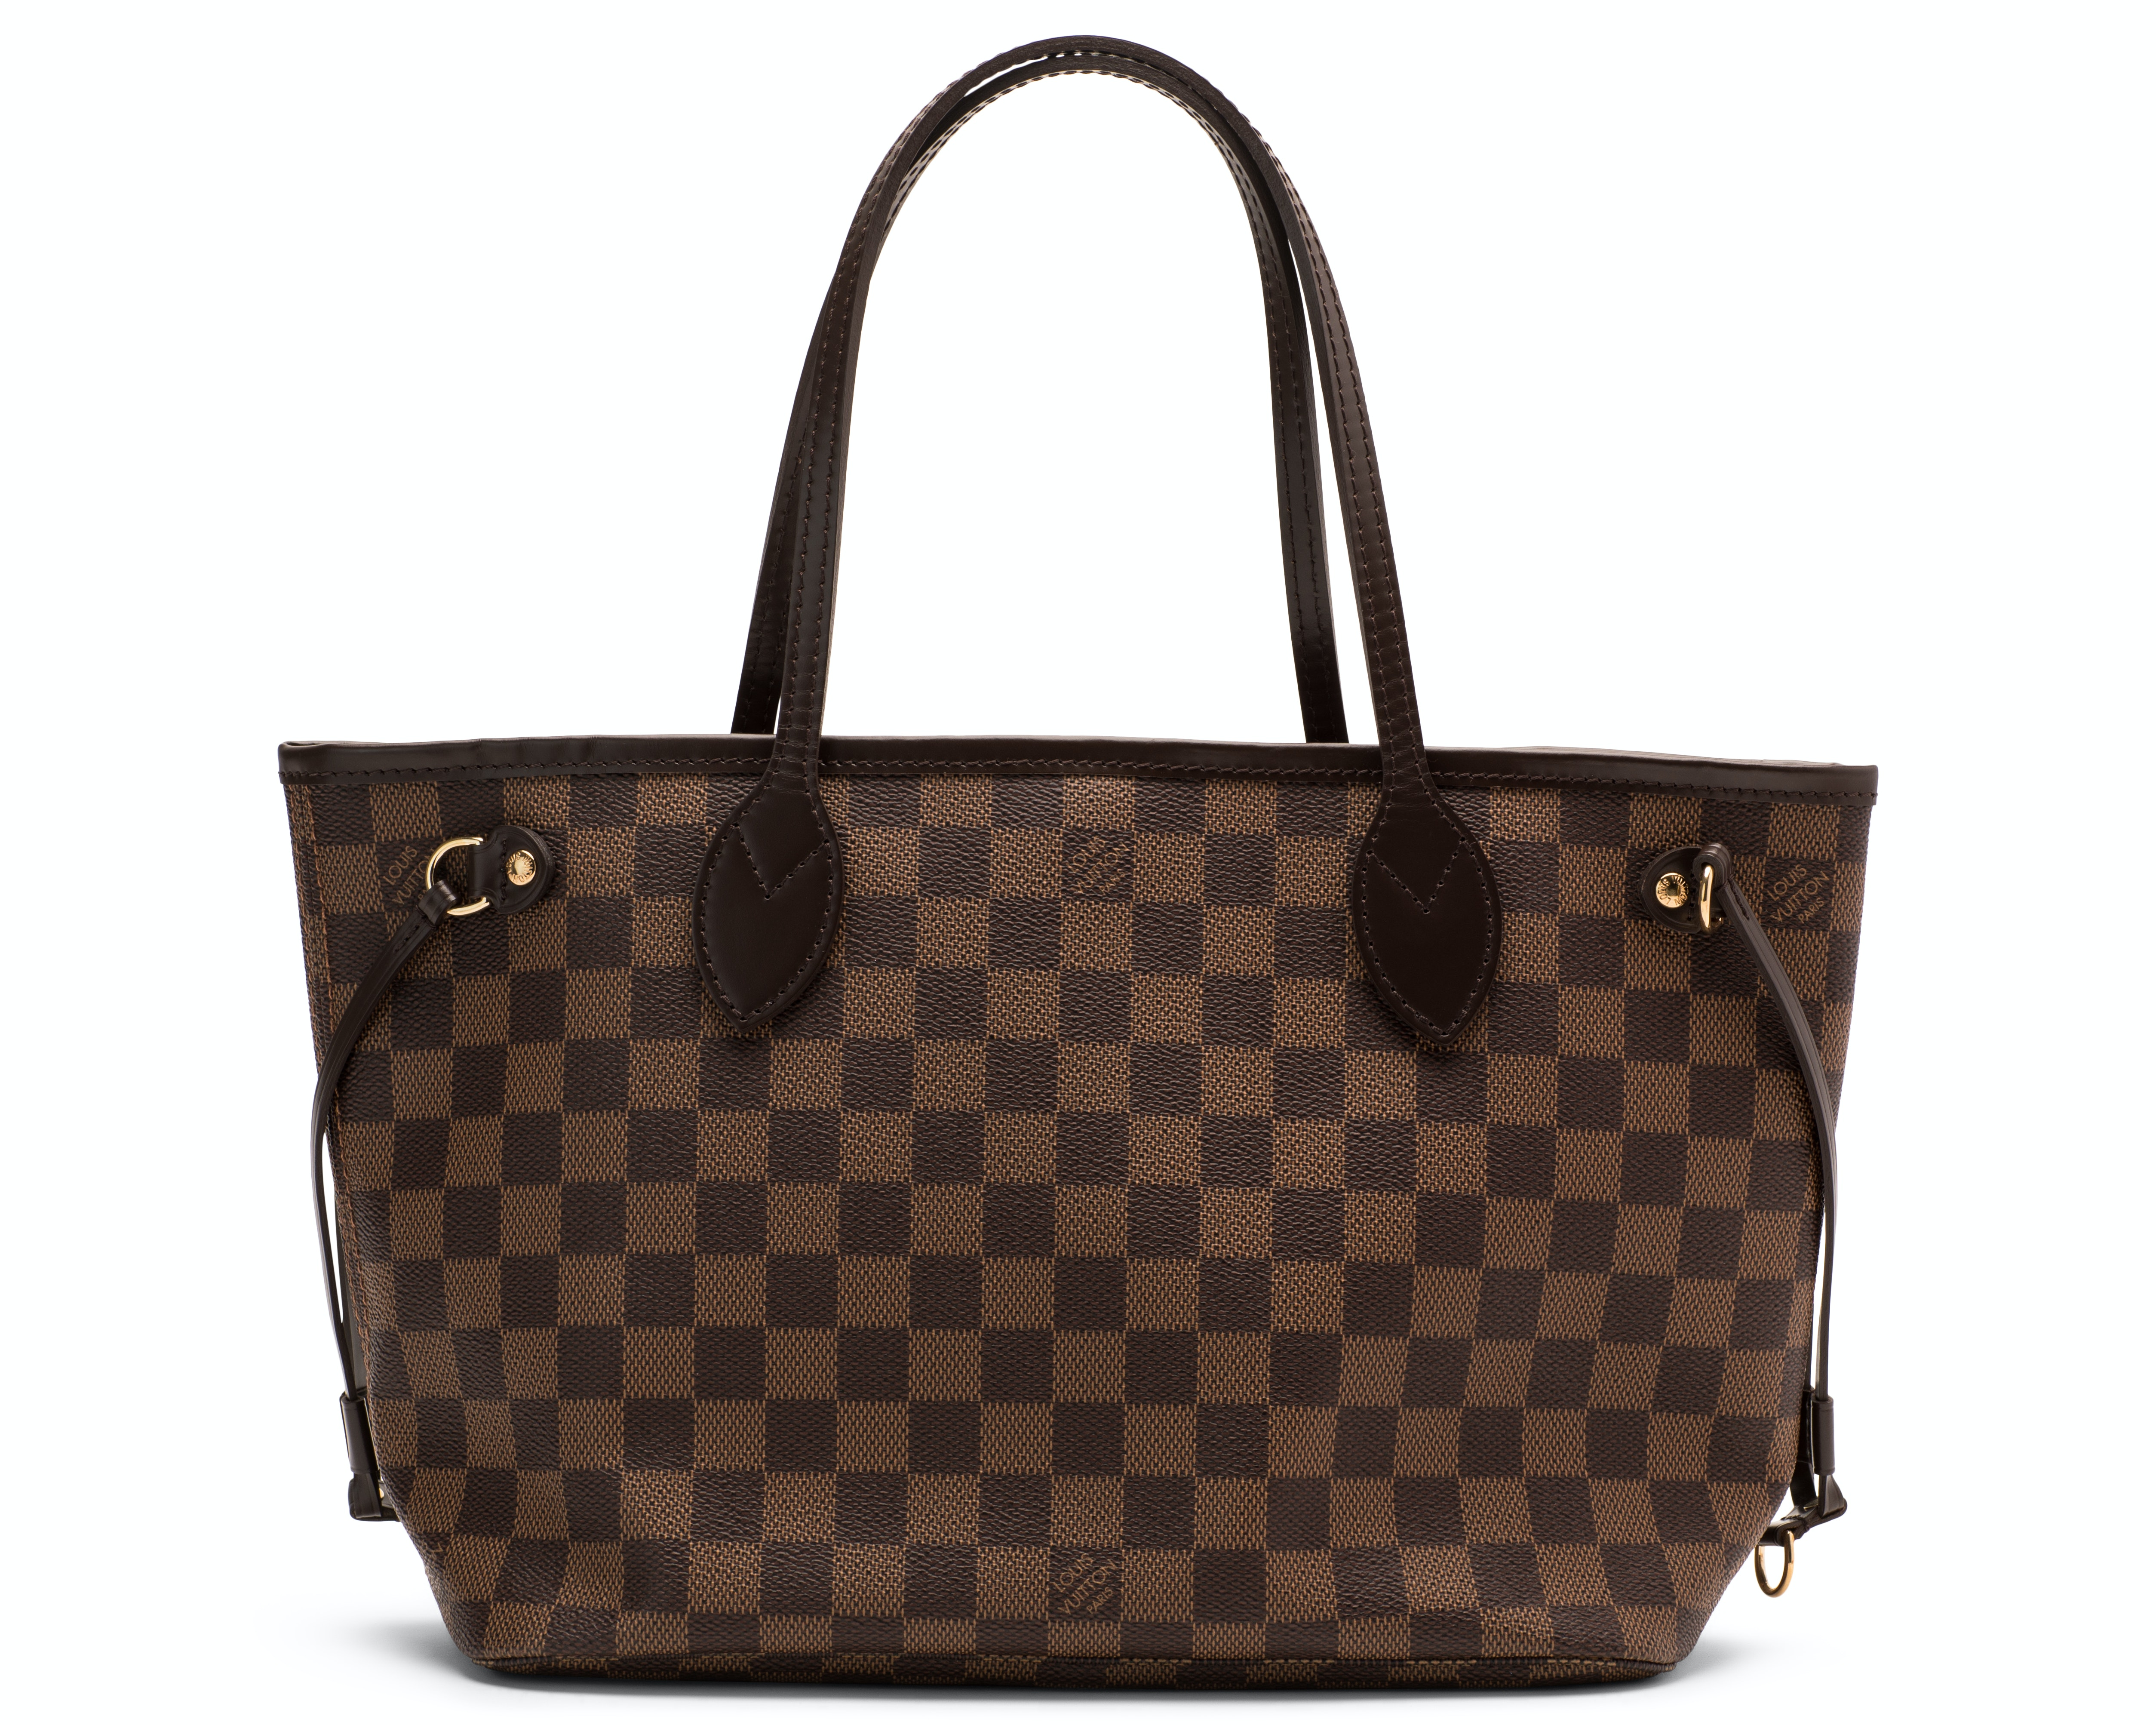 Louis Vuitton Neverfull Damier Ebene PM Brown